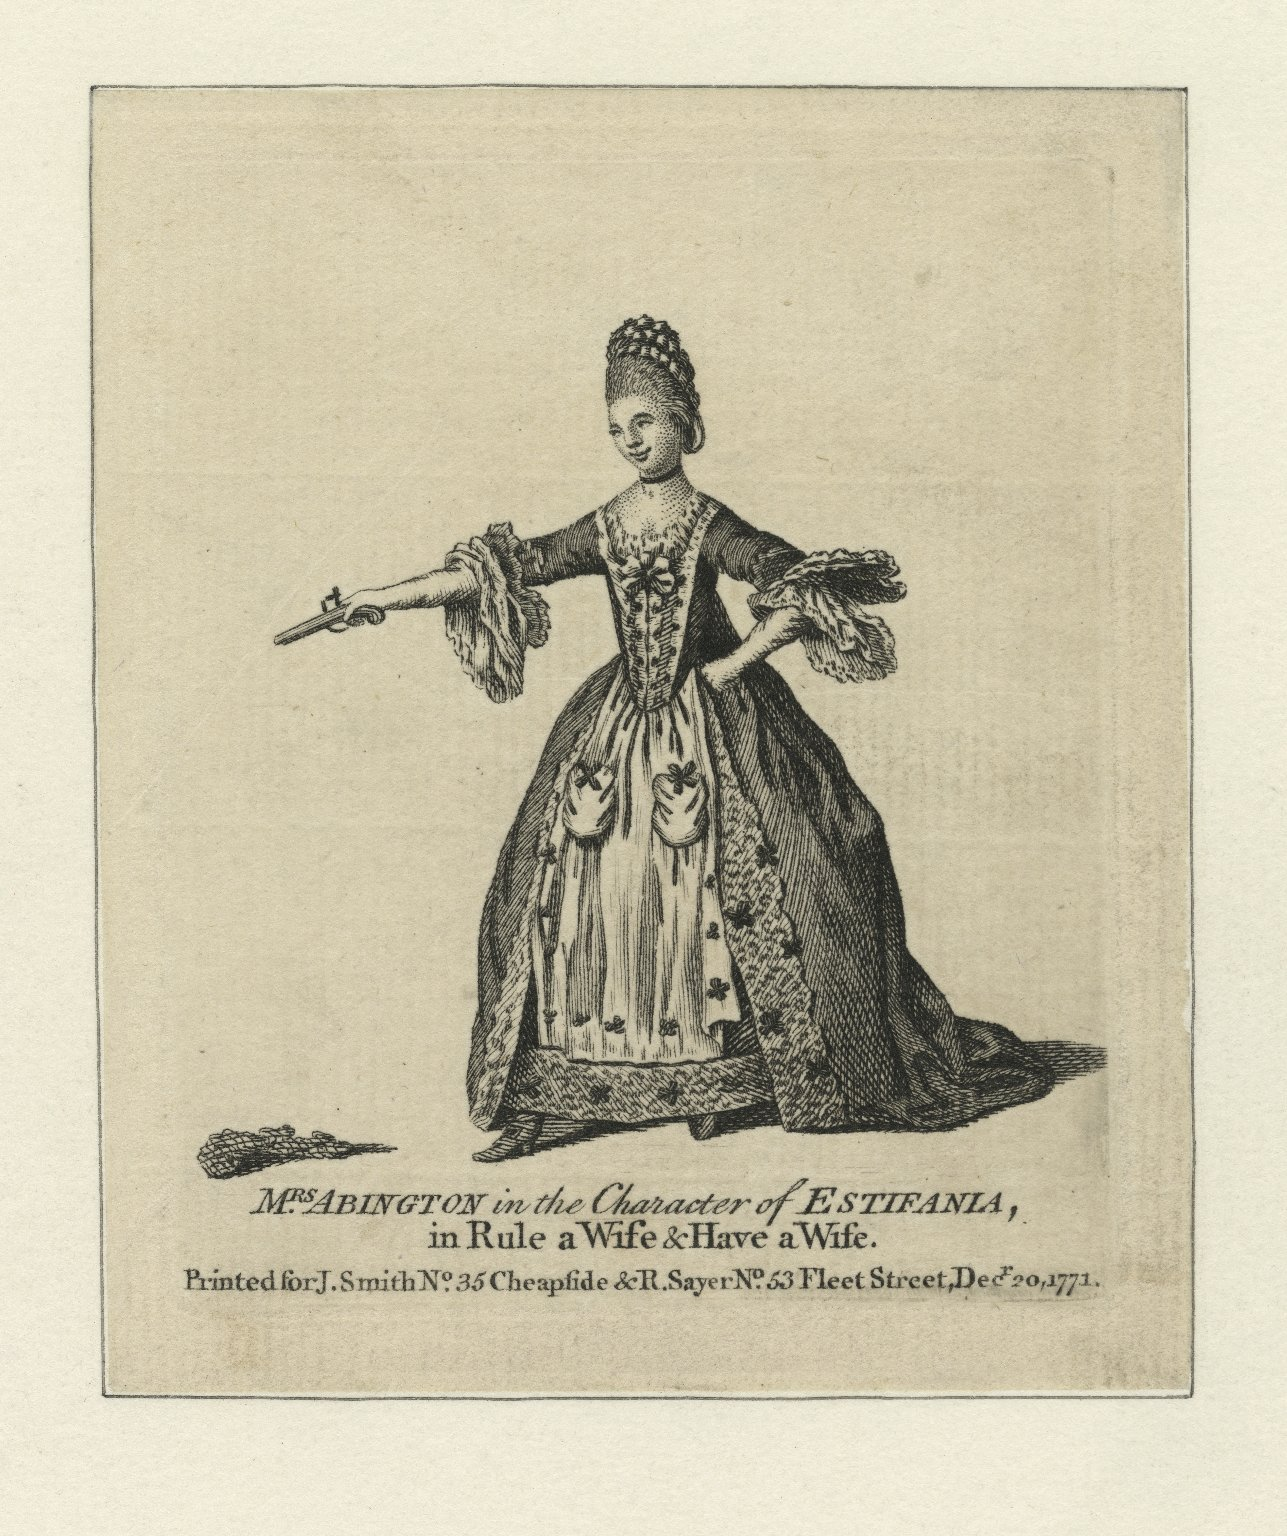 Mrs. Abington in the character of Estifania [graphic].